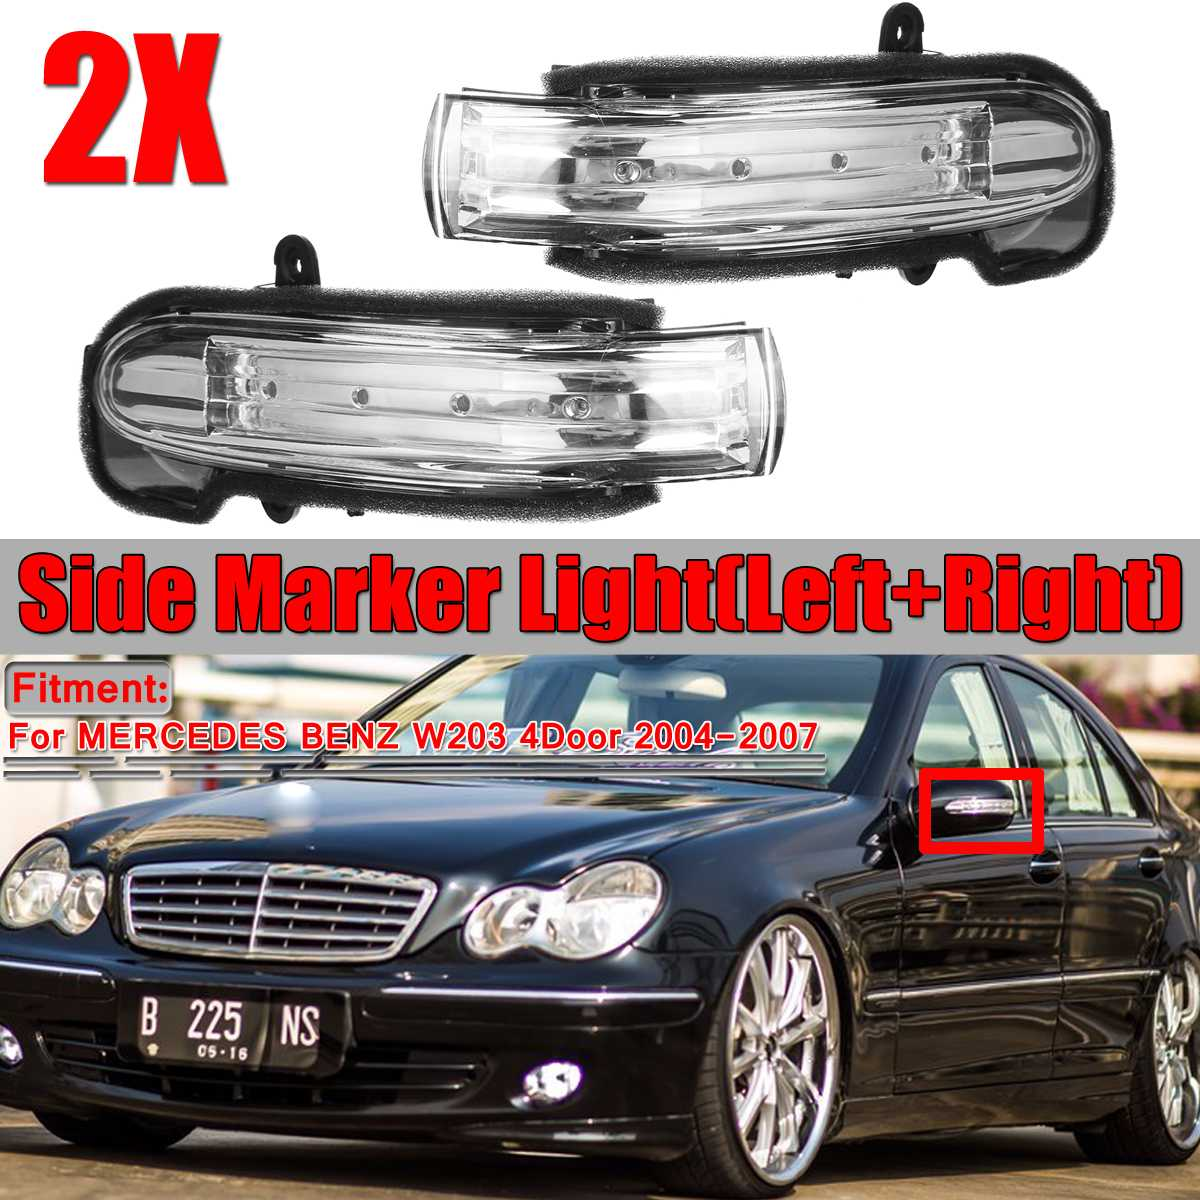 Car Side Marker Light Door Wing Rearview Mirror Turn Signal Indicator Side Light Lamp For Mercedes For Benz W203 4Door 2004-2007